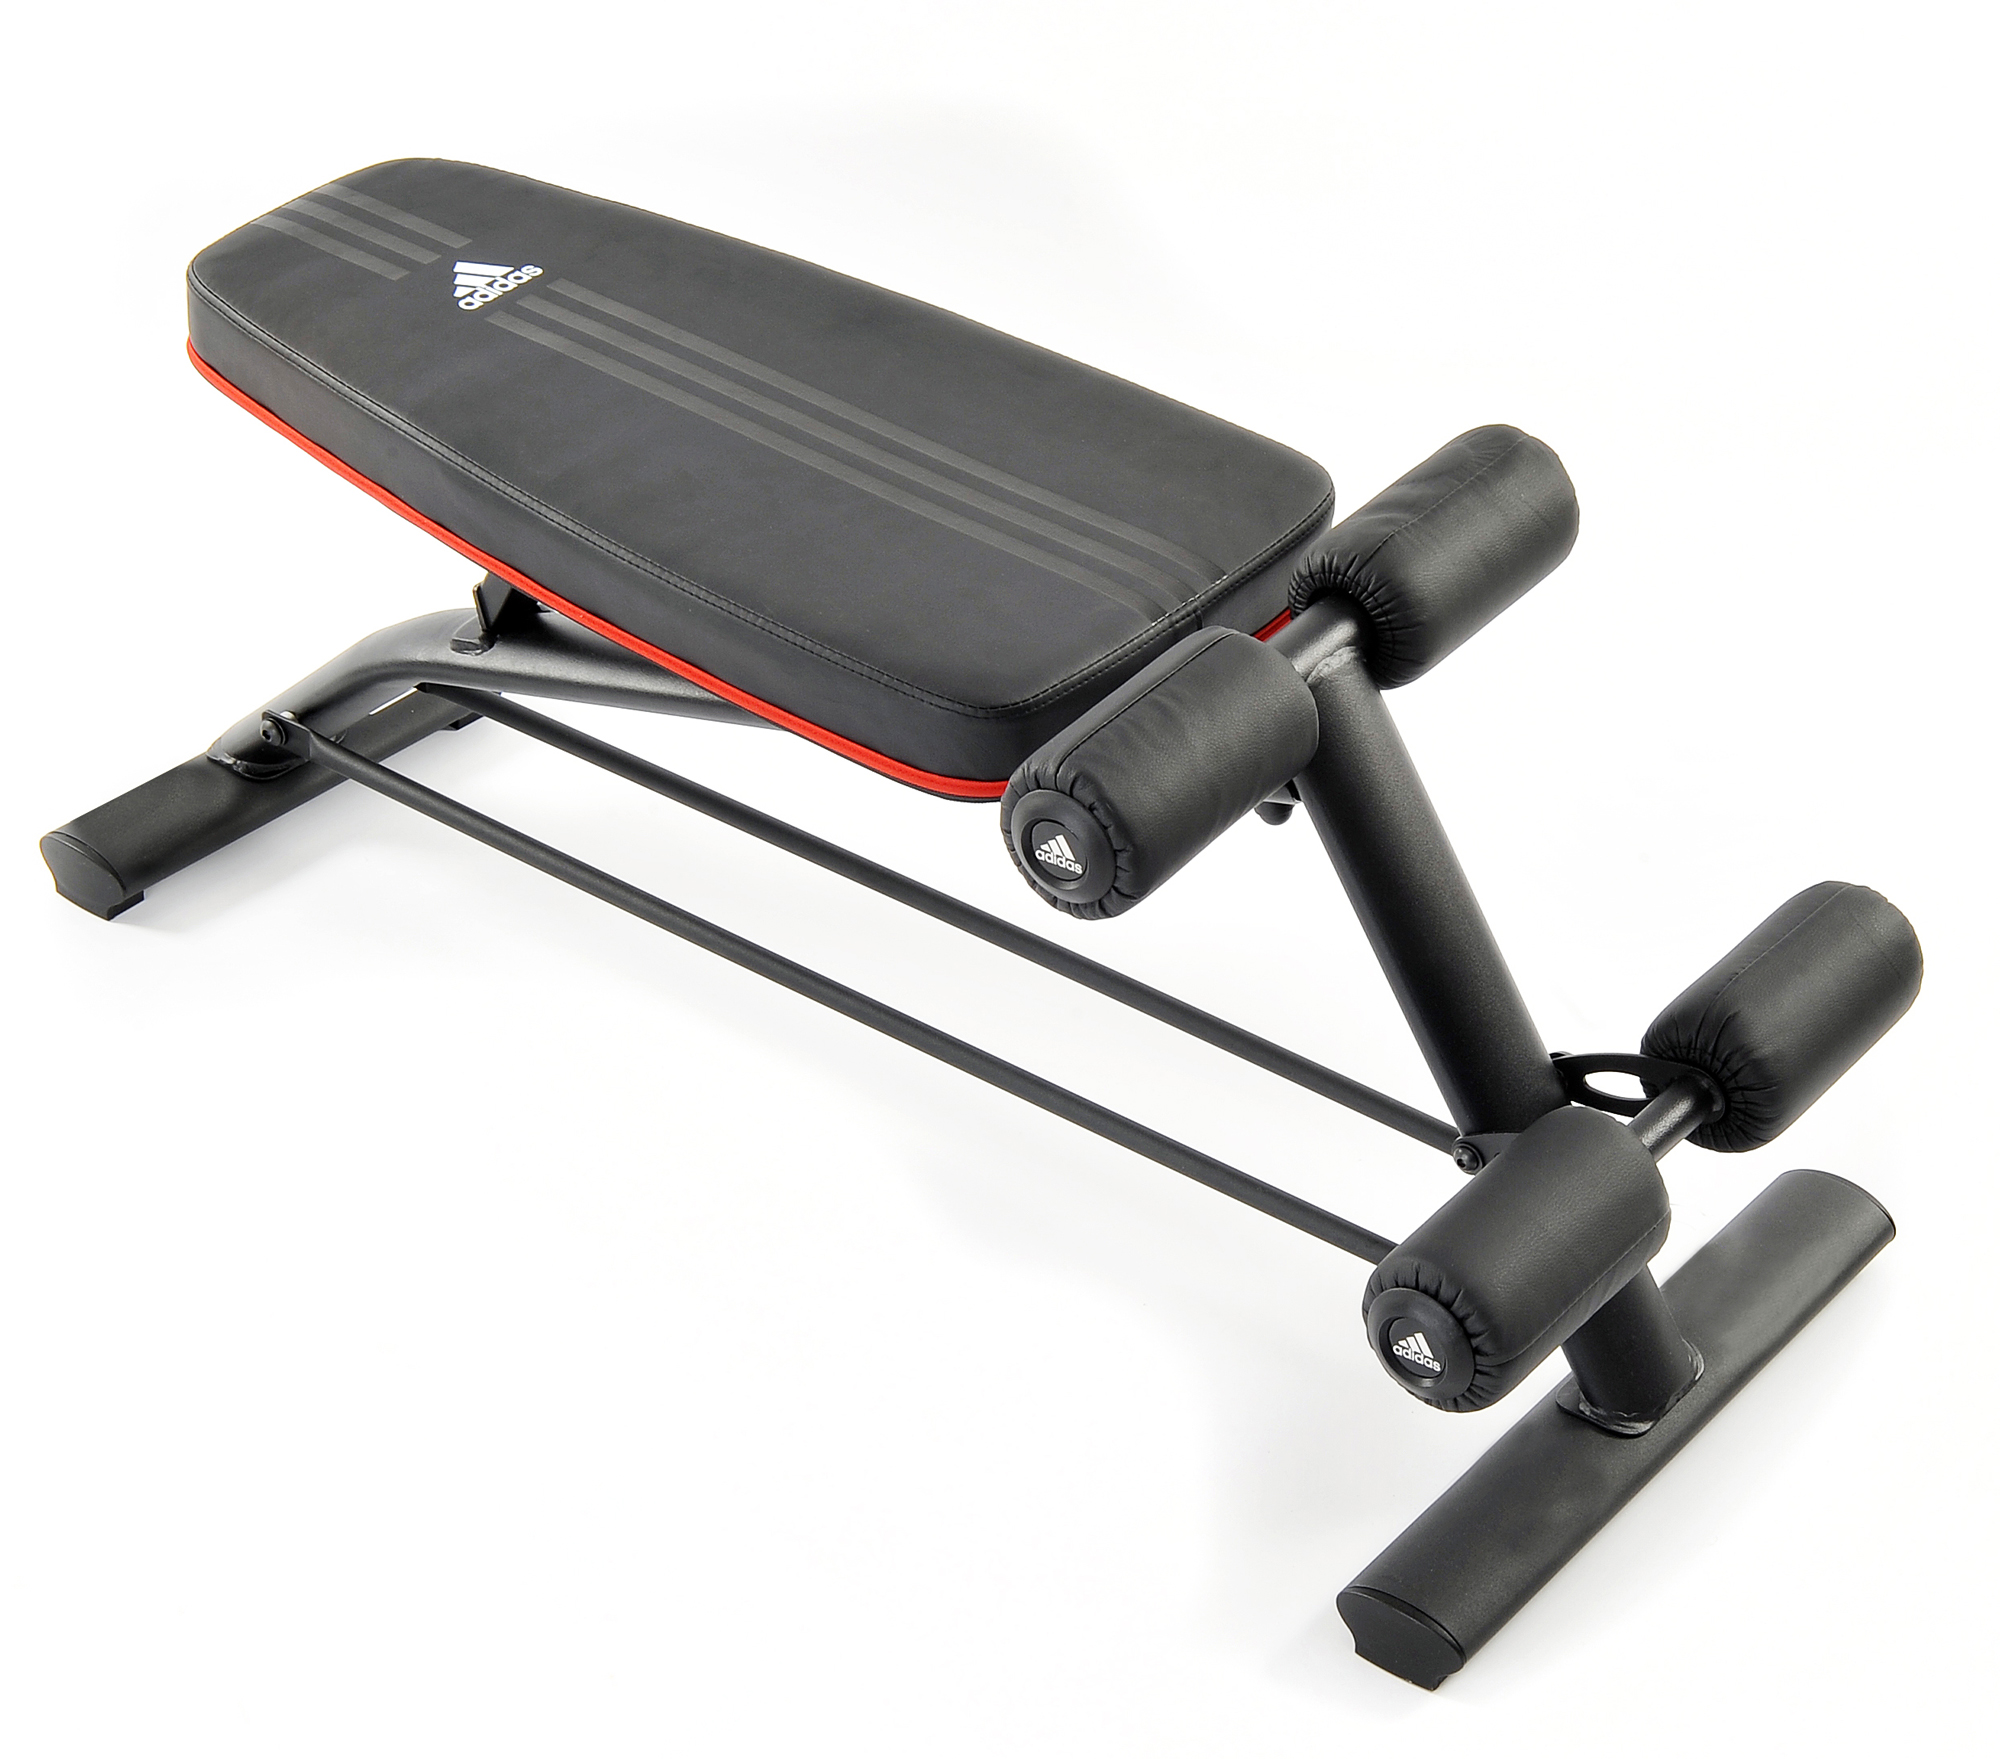 Adidas Fitness Adi 415 Adjustable Weight Lifting Abdominal Crunch Board Bench Ebay